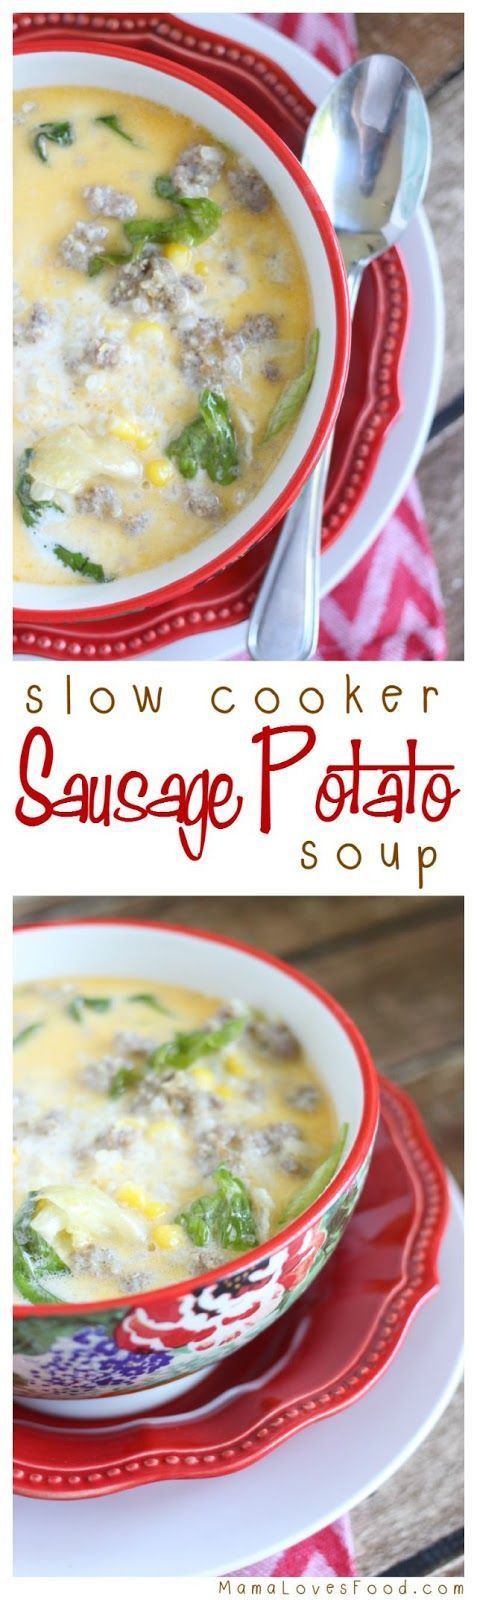 Sausage Potato Soup for the Slow Cooker